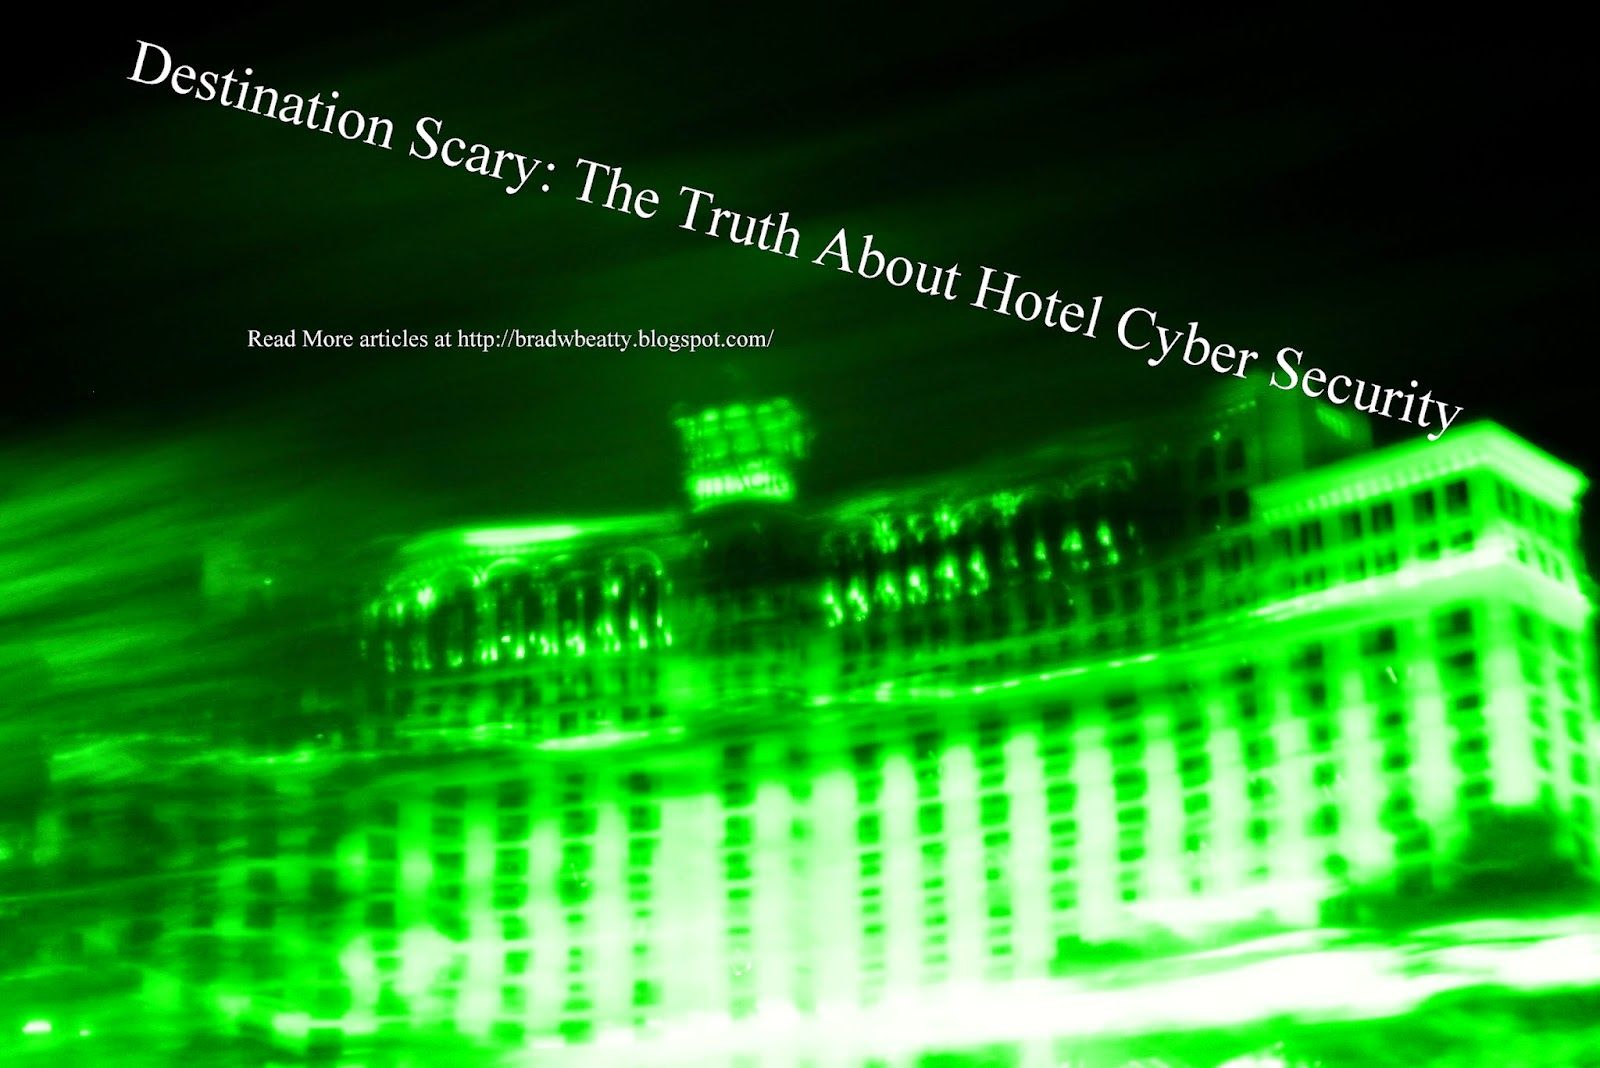 Destination Scary The Truth About Hotel Cyber Security